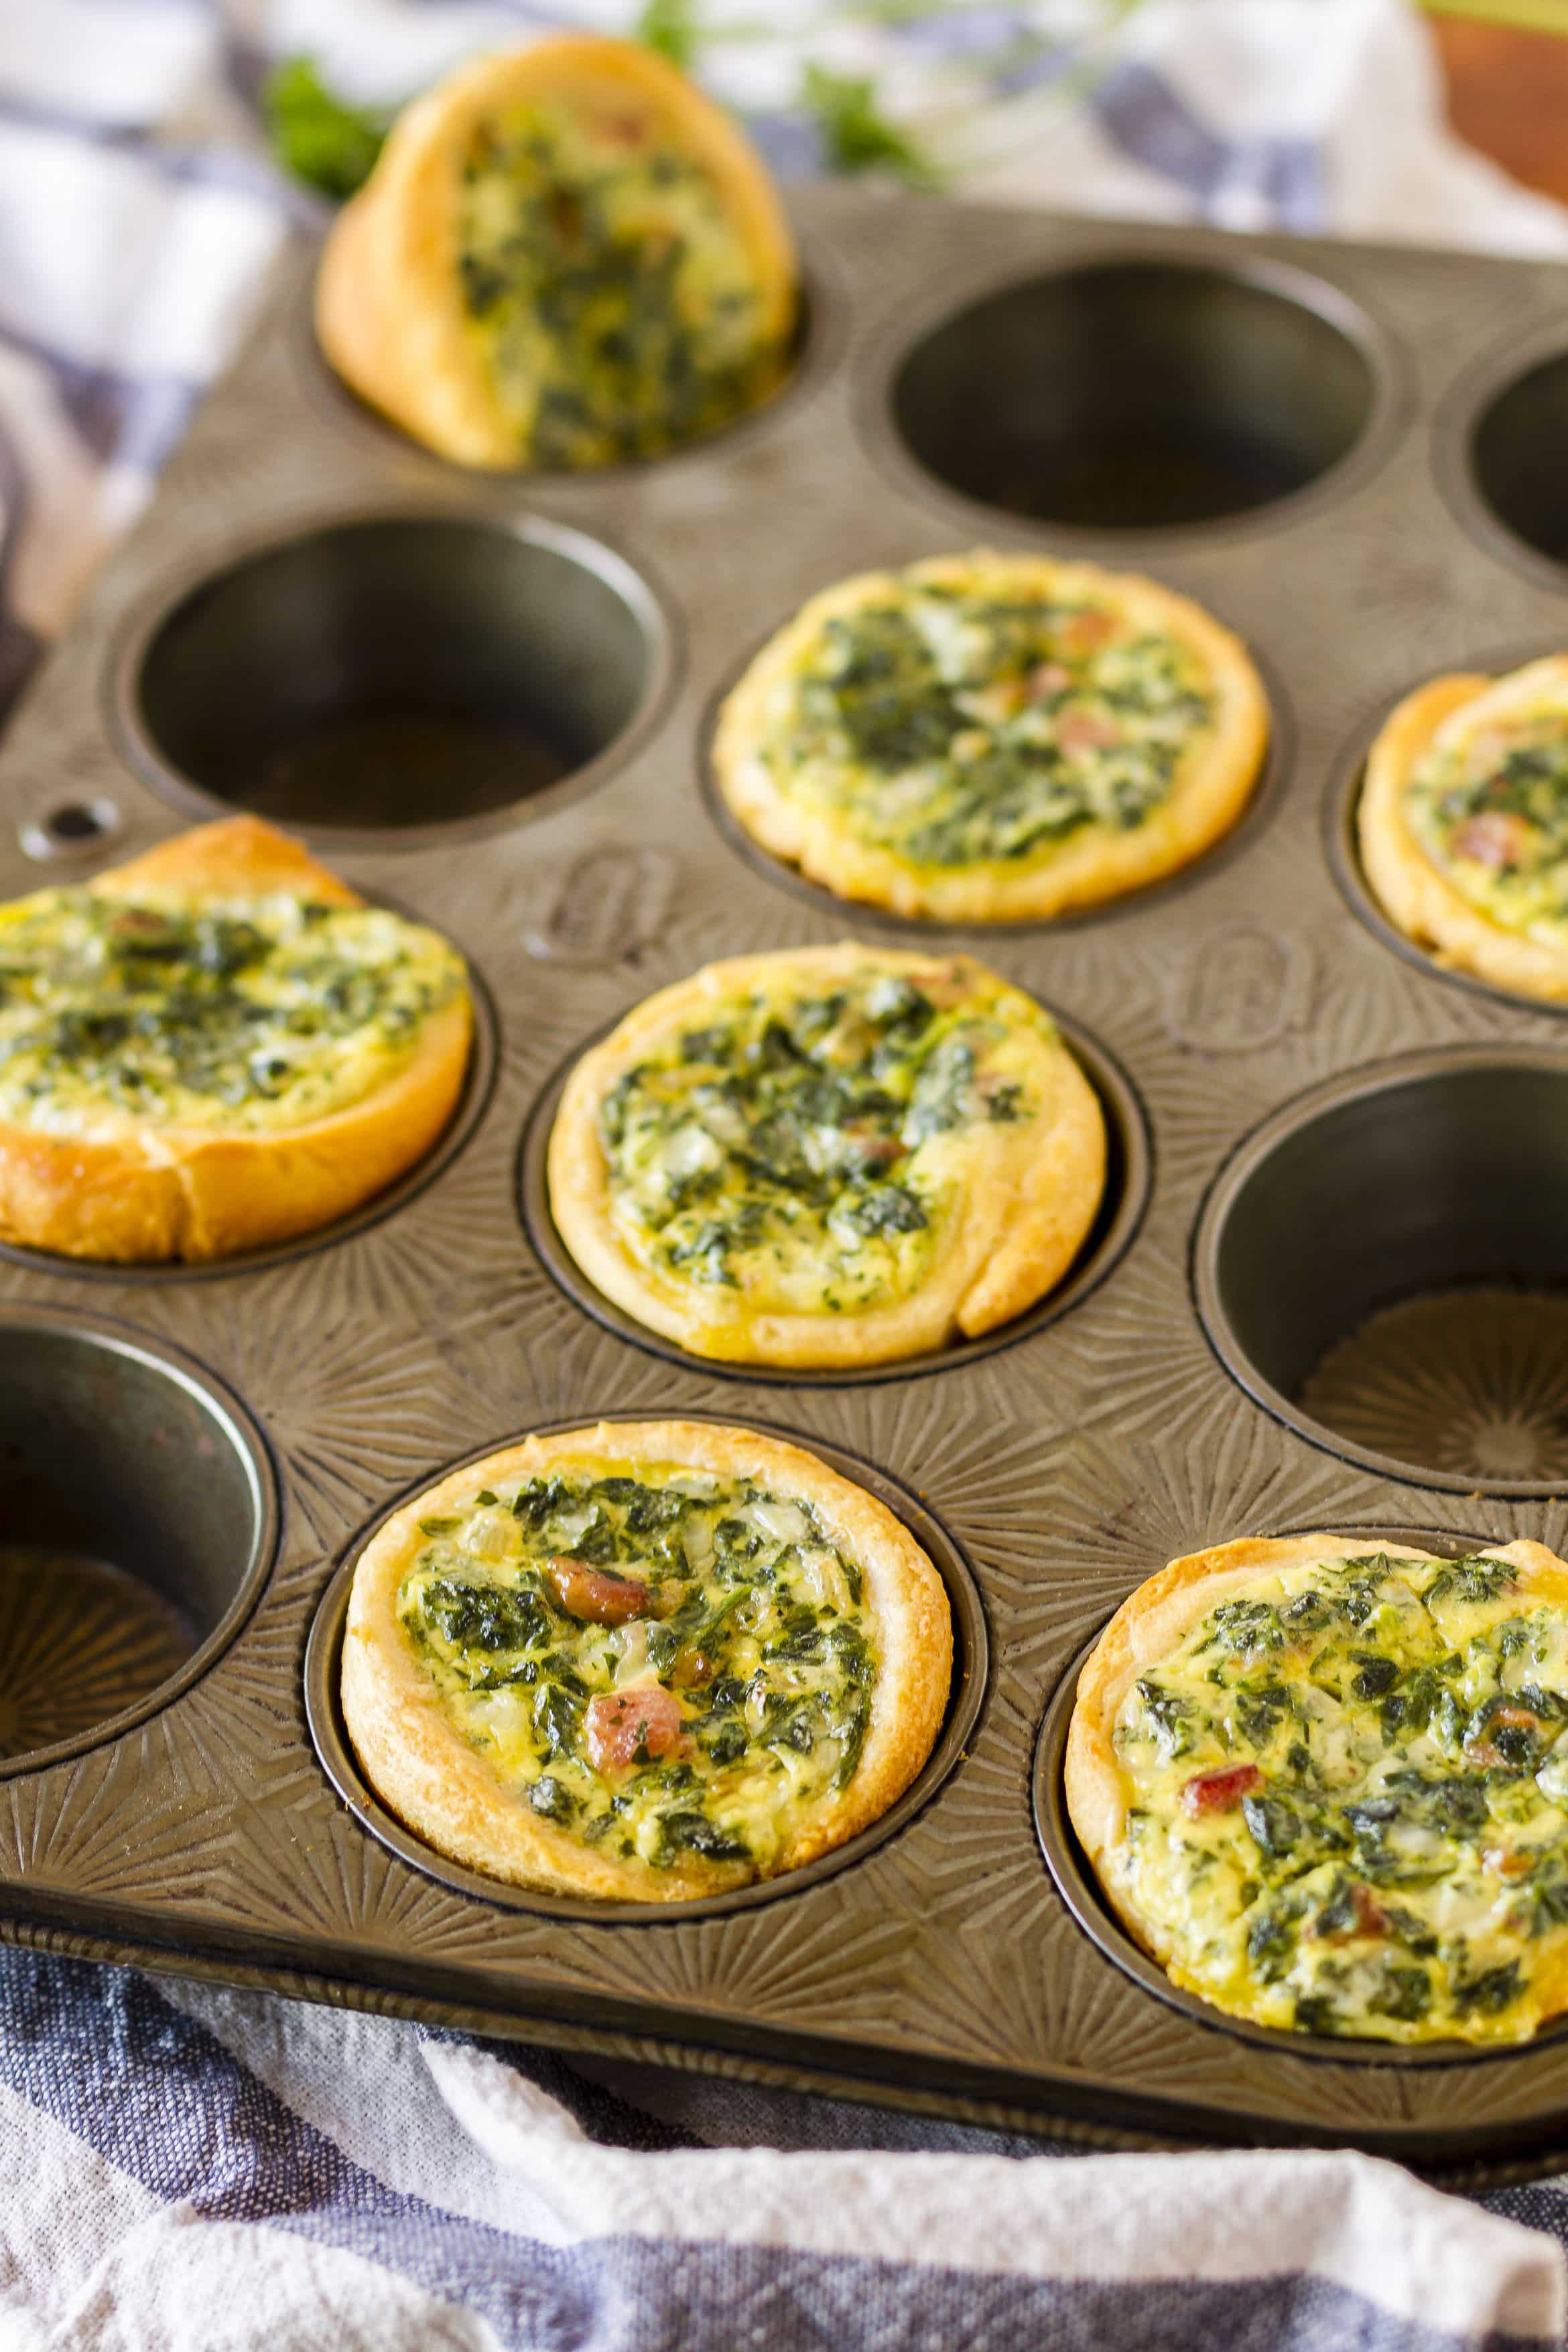 Mini Spinach Quiche -- these cute little mini quiche filled with spinach and bacon are a delicious and filling brunch idea! They're also very tasty cold, making them an excellent on the go breakfast option…   easy mini spinach quiche   mini spinach quiche recipe   mini spinach quiche brunch   mini spinach quiche crescent rolls   find the recipe on unsophisticook.com